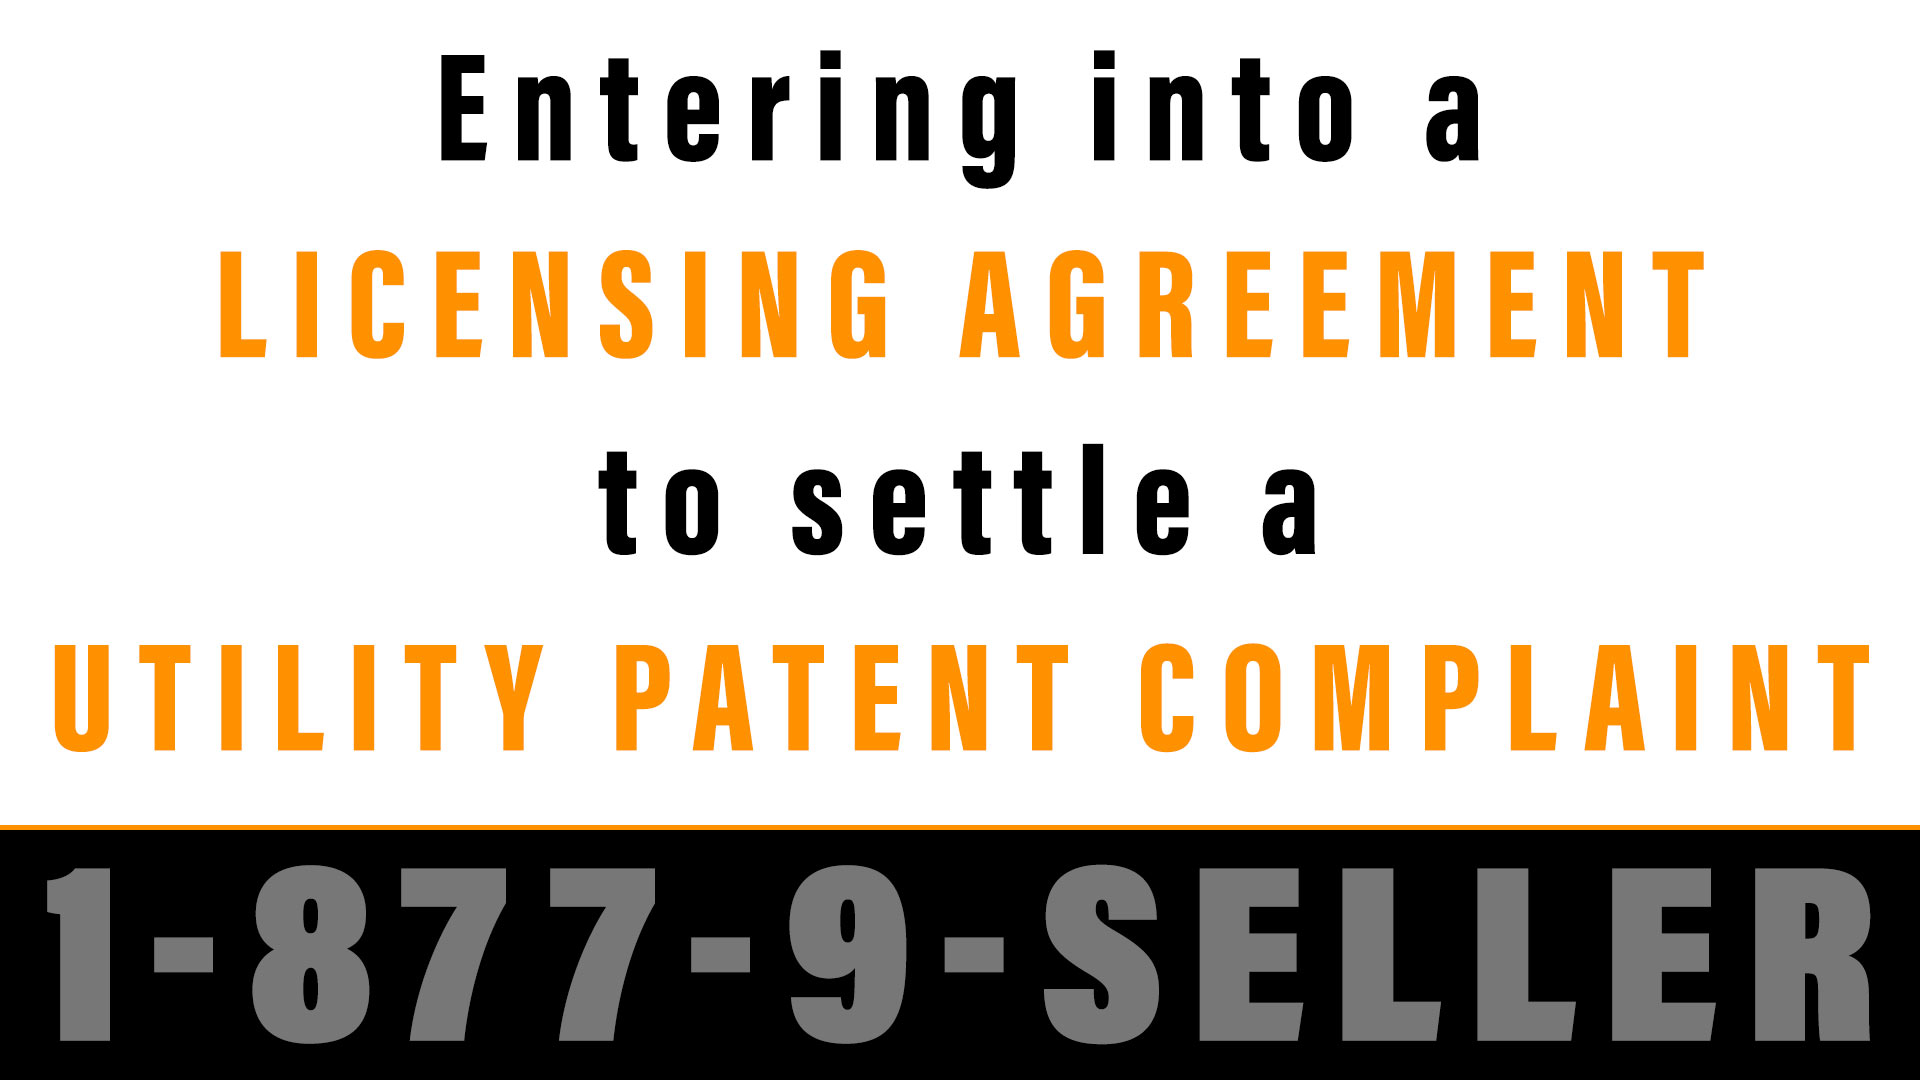 Entering into a Licensing Agreement to Settle a Utility Patent Complaint